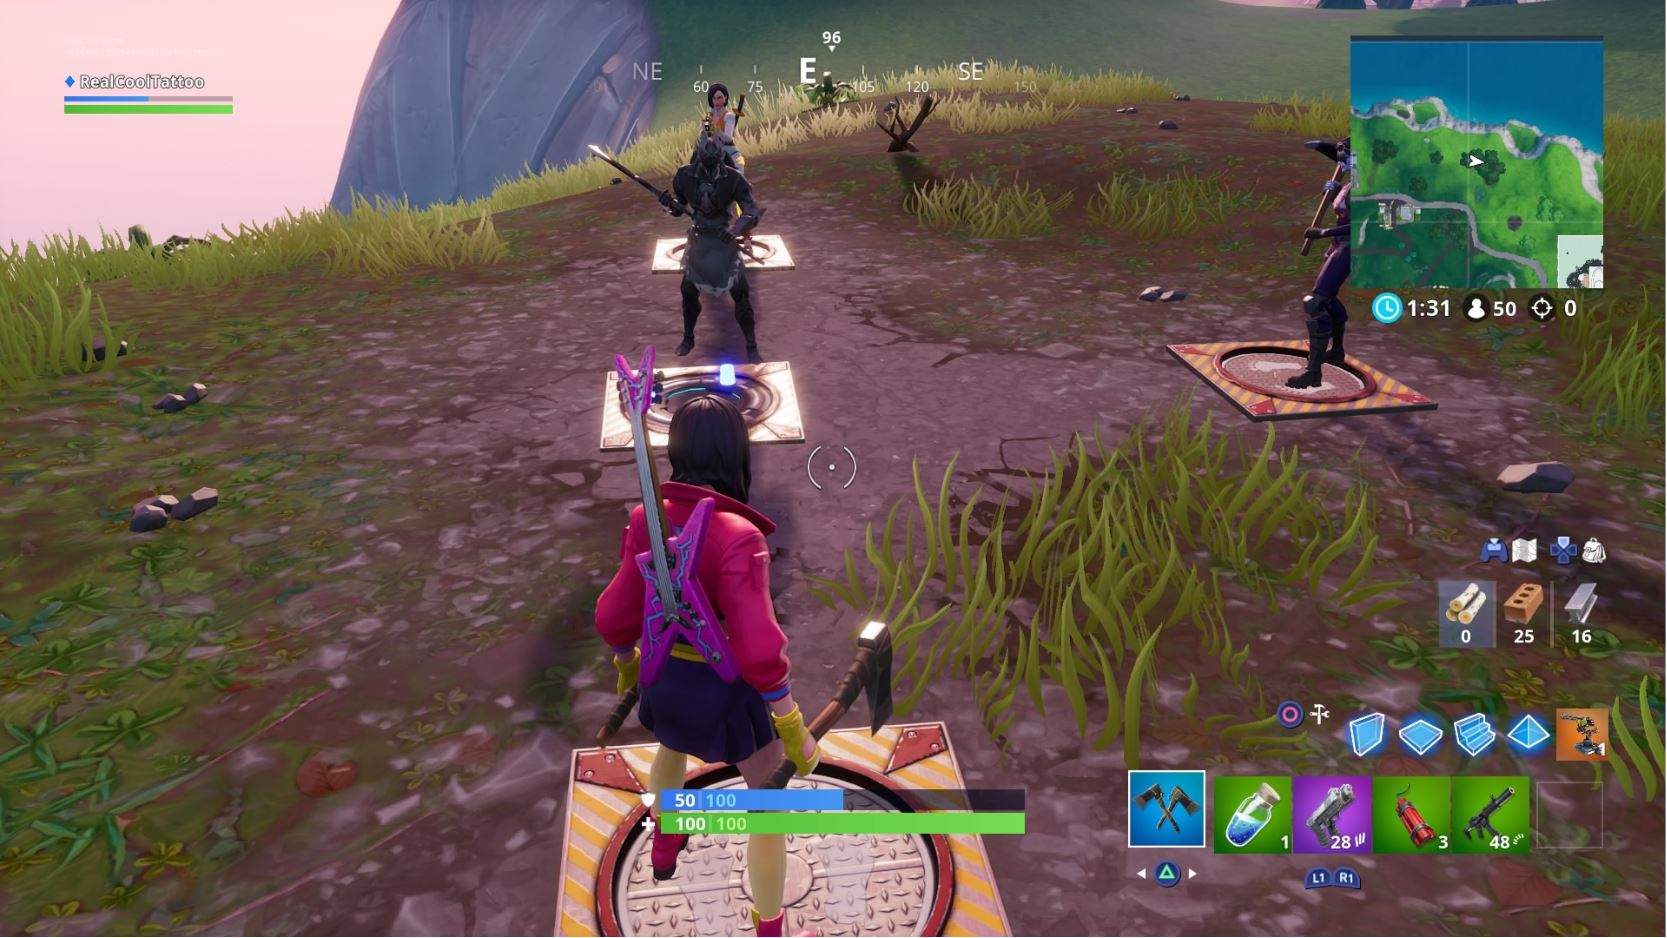 Fortnite: Fortbyte Locations Guide